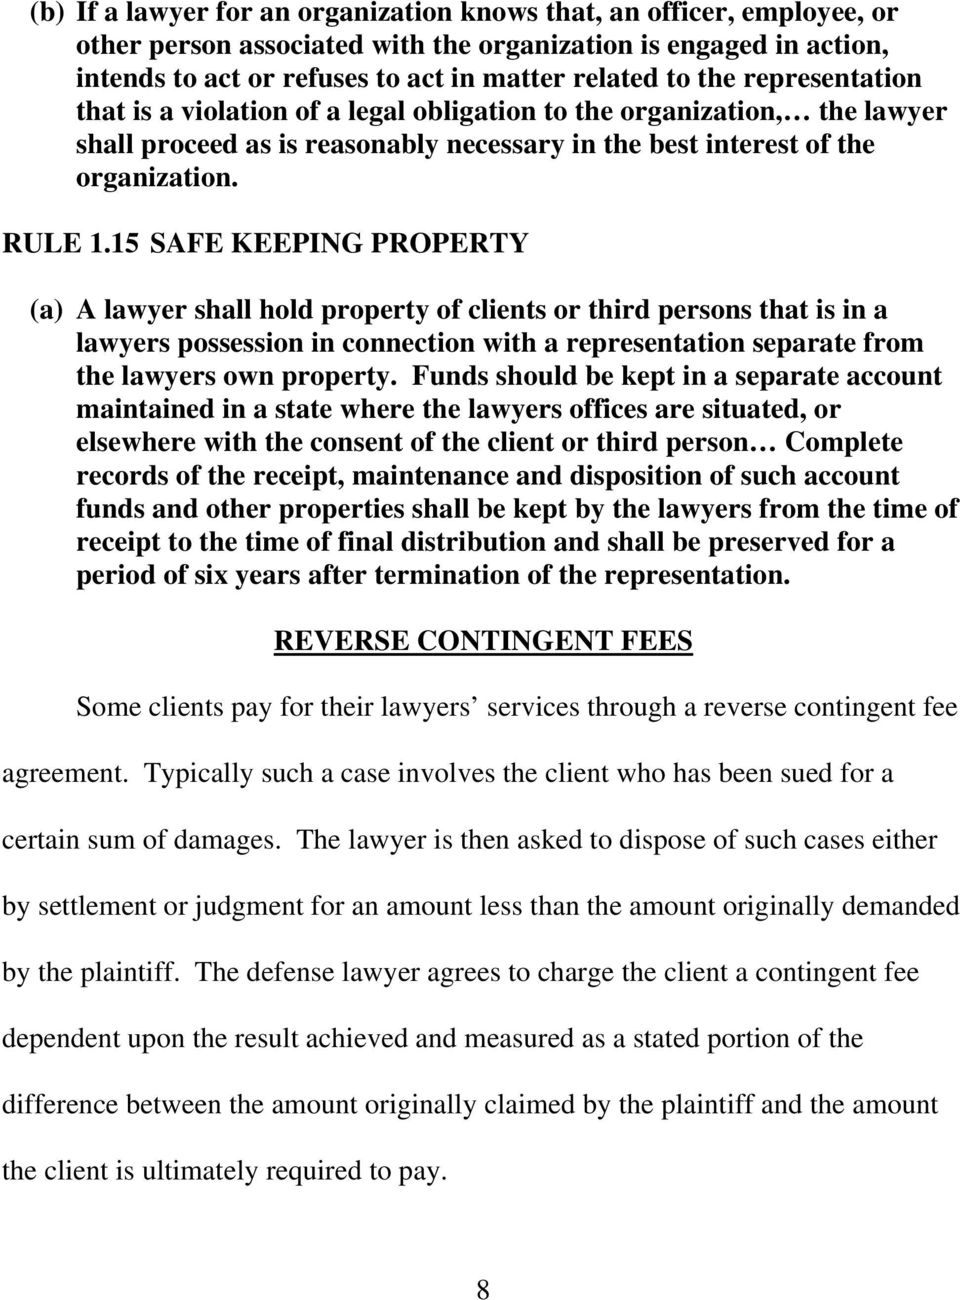 15 SAFE KEEPING PROPERTY (a) A lawyer shall hold property of clients or third persons that is in a lawyers possession in connection with a representation separate from the lawyers own property.